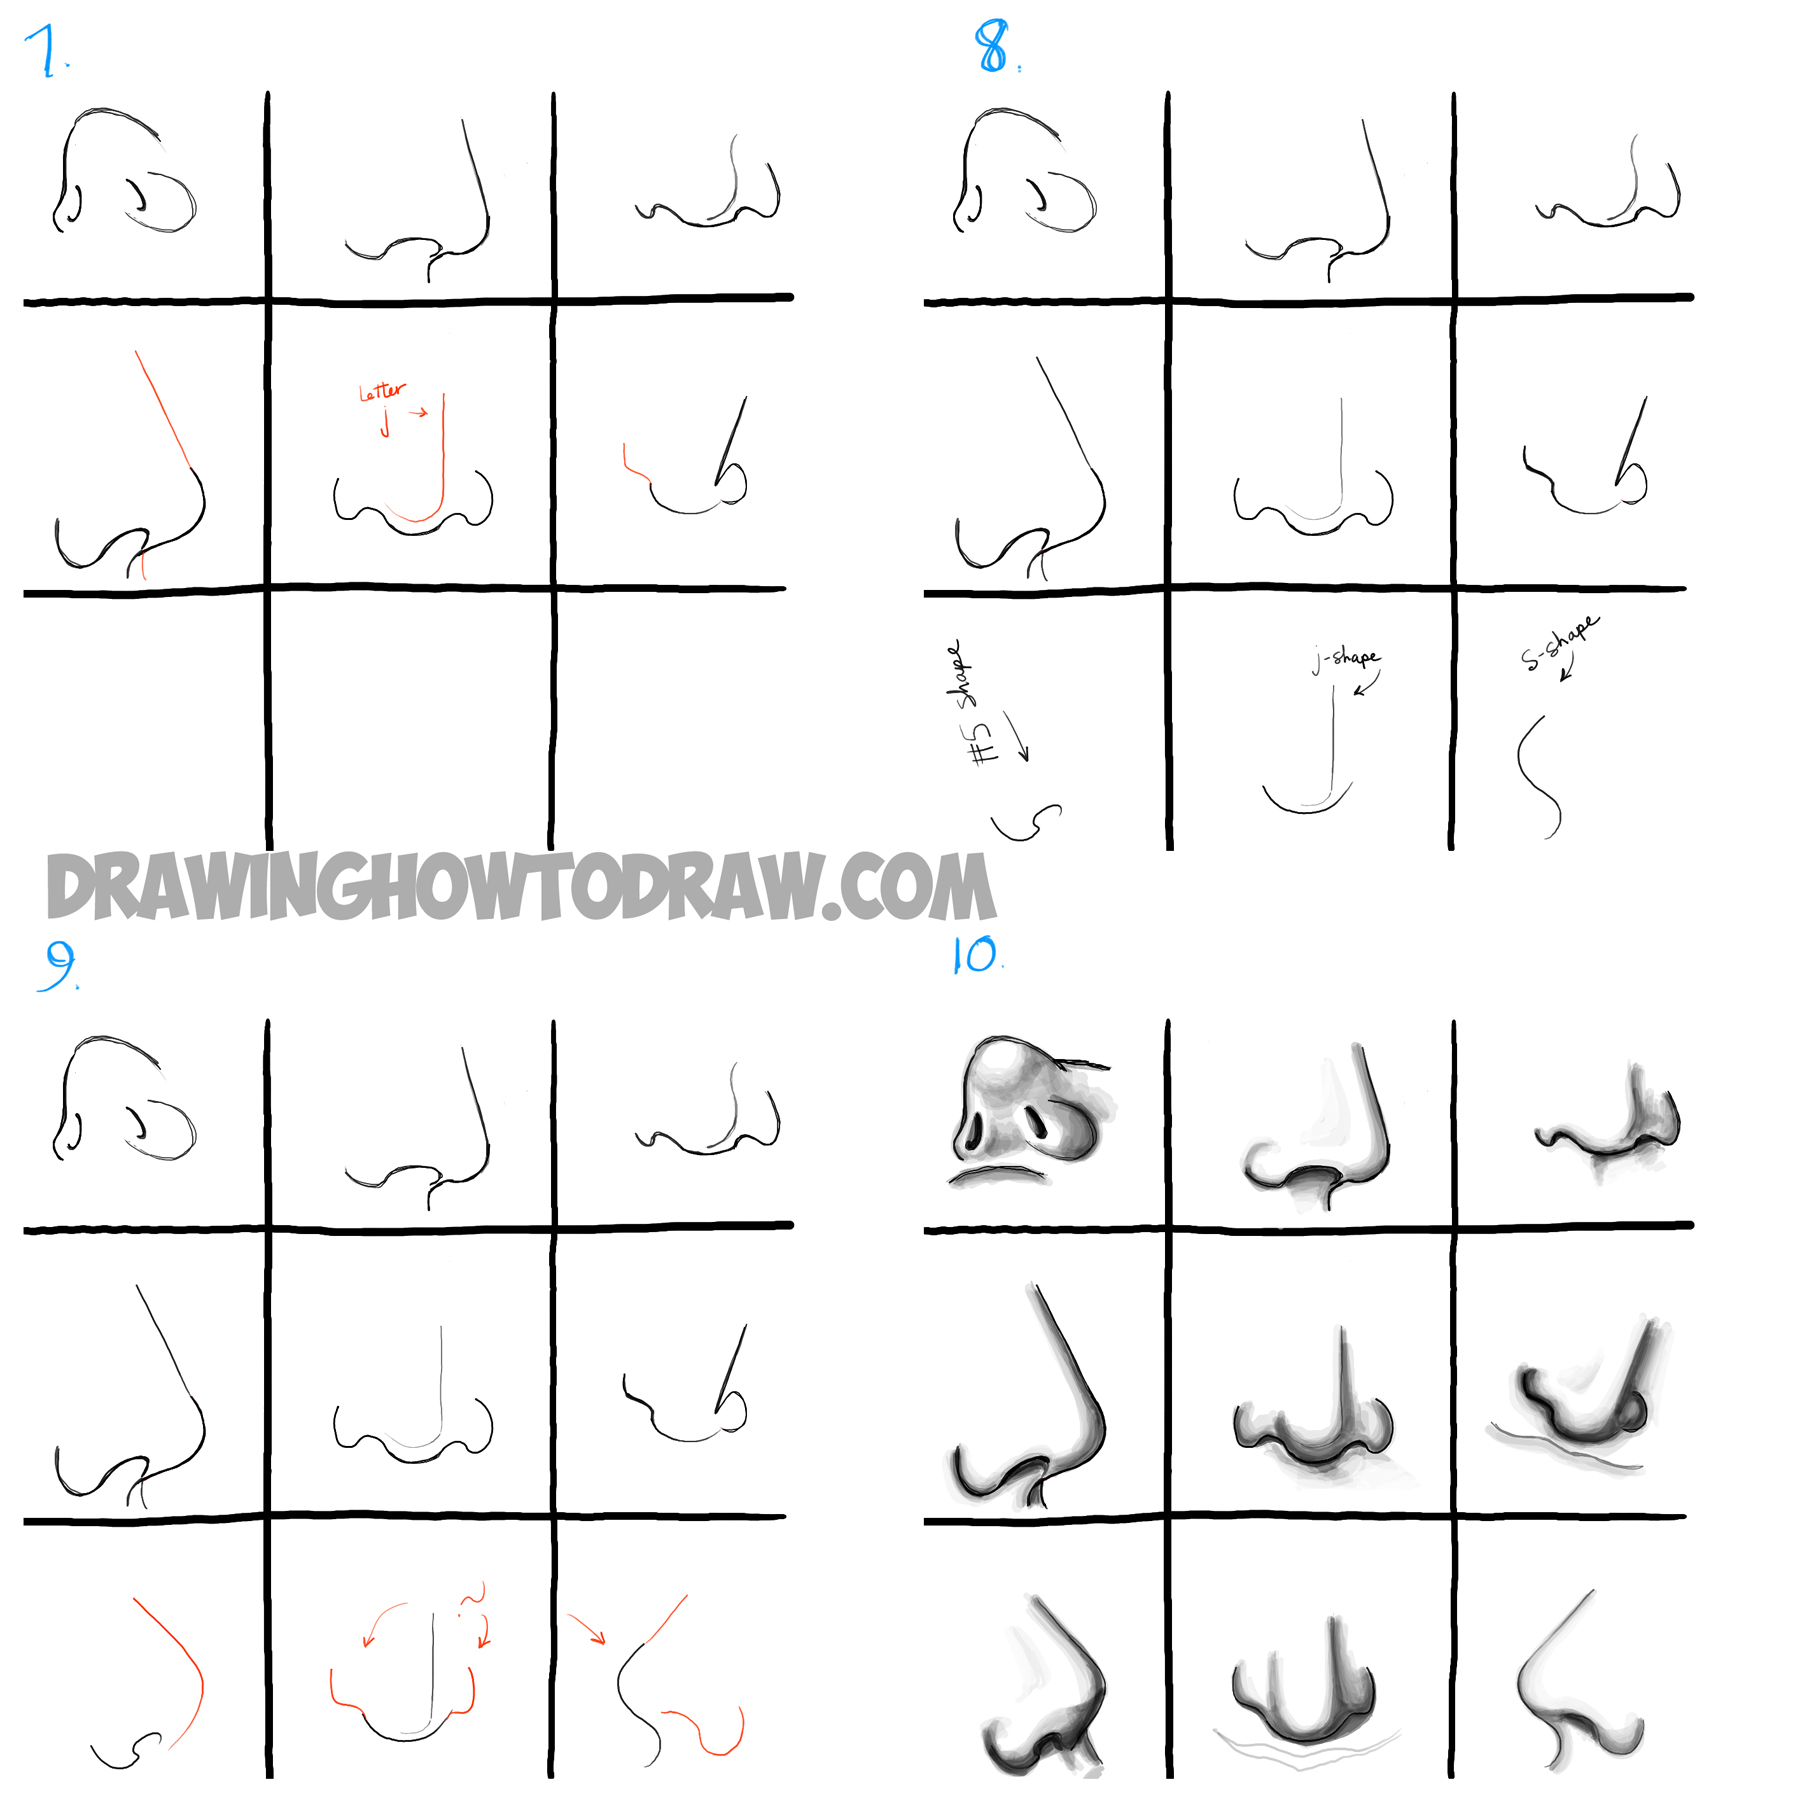 How to draw noses from all different angles and positions step by step drawing tutorial